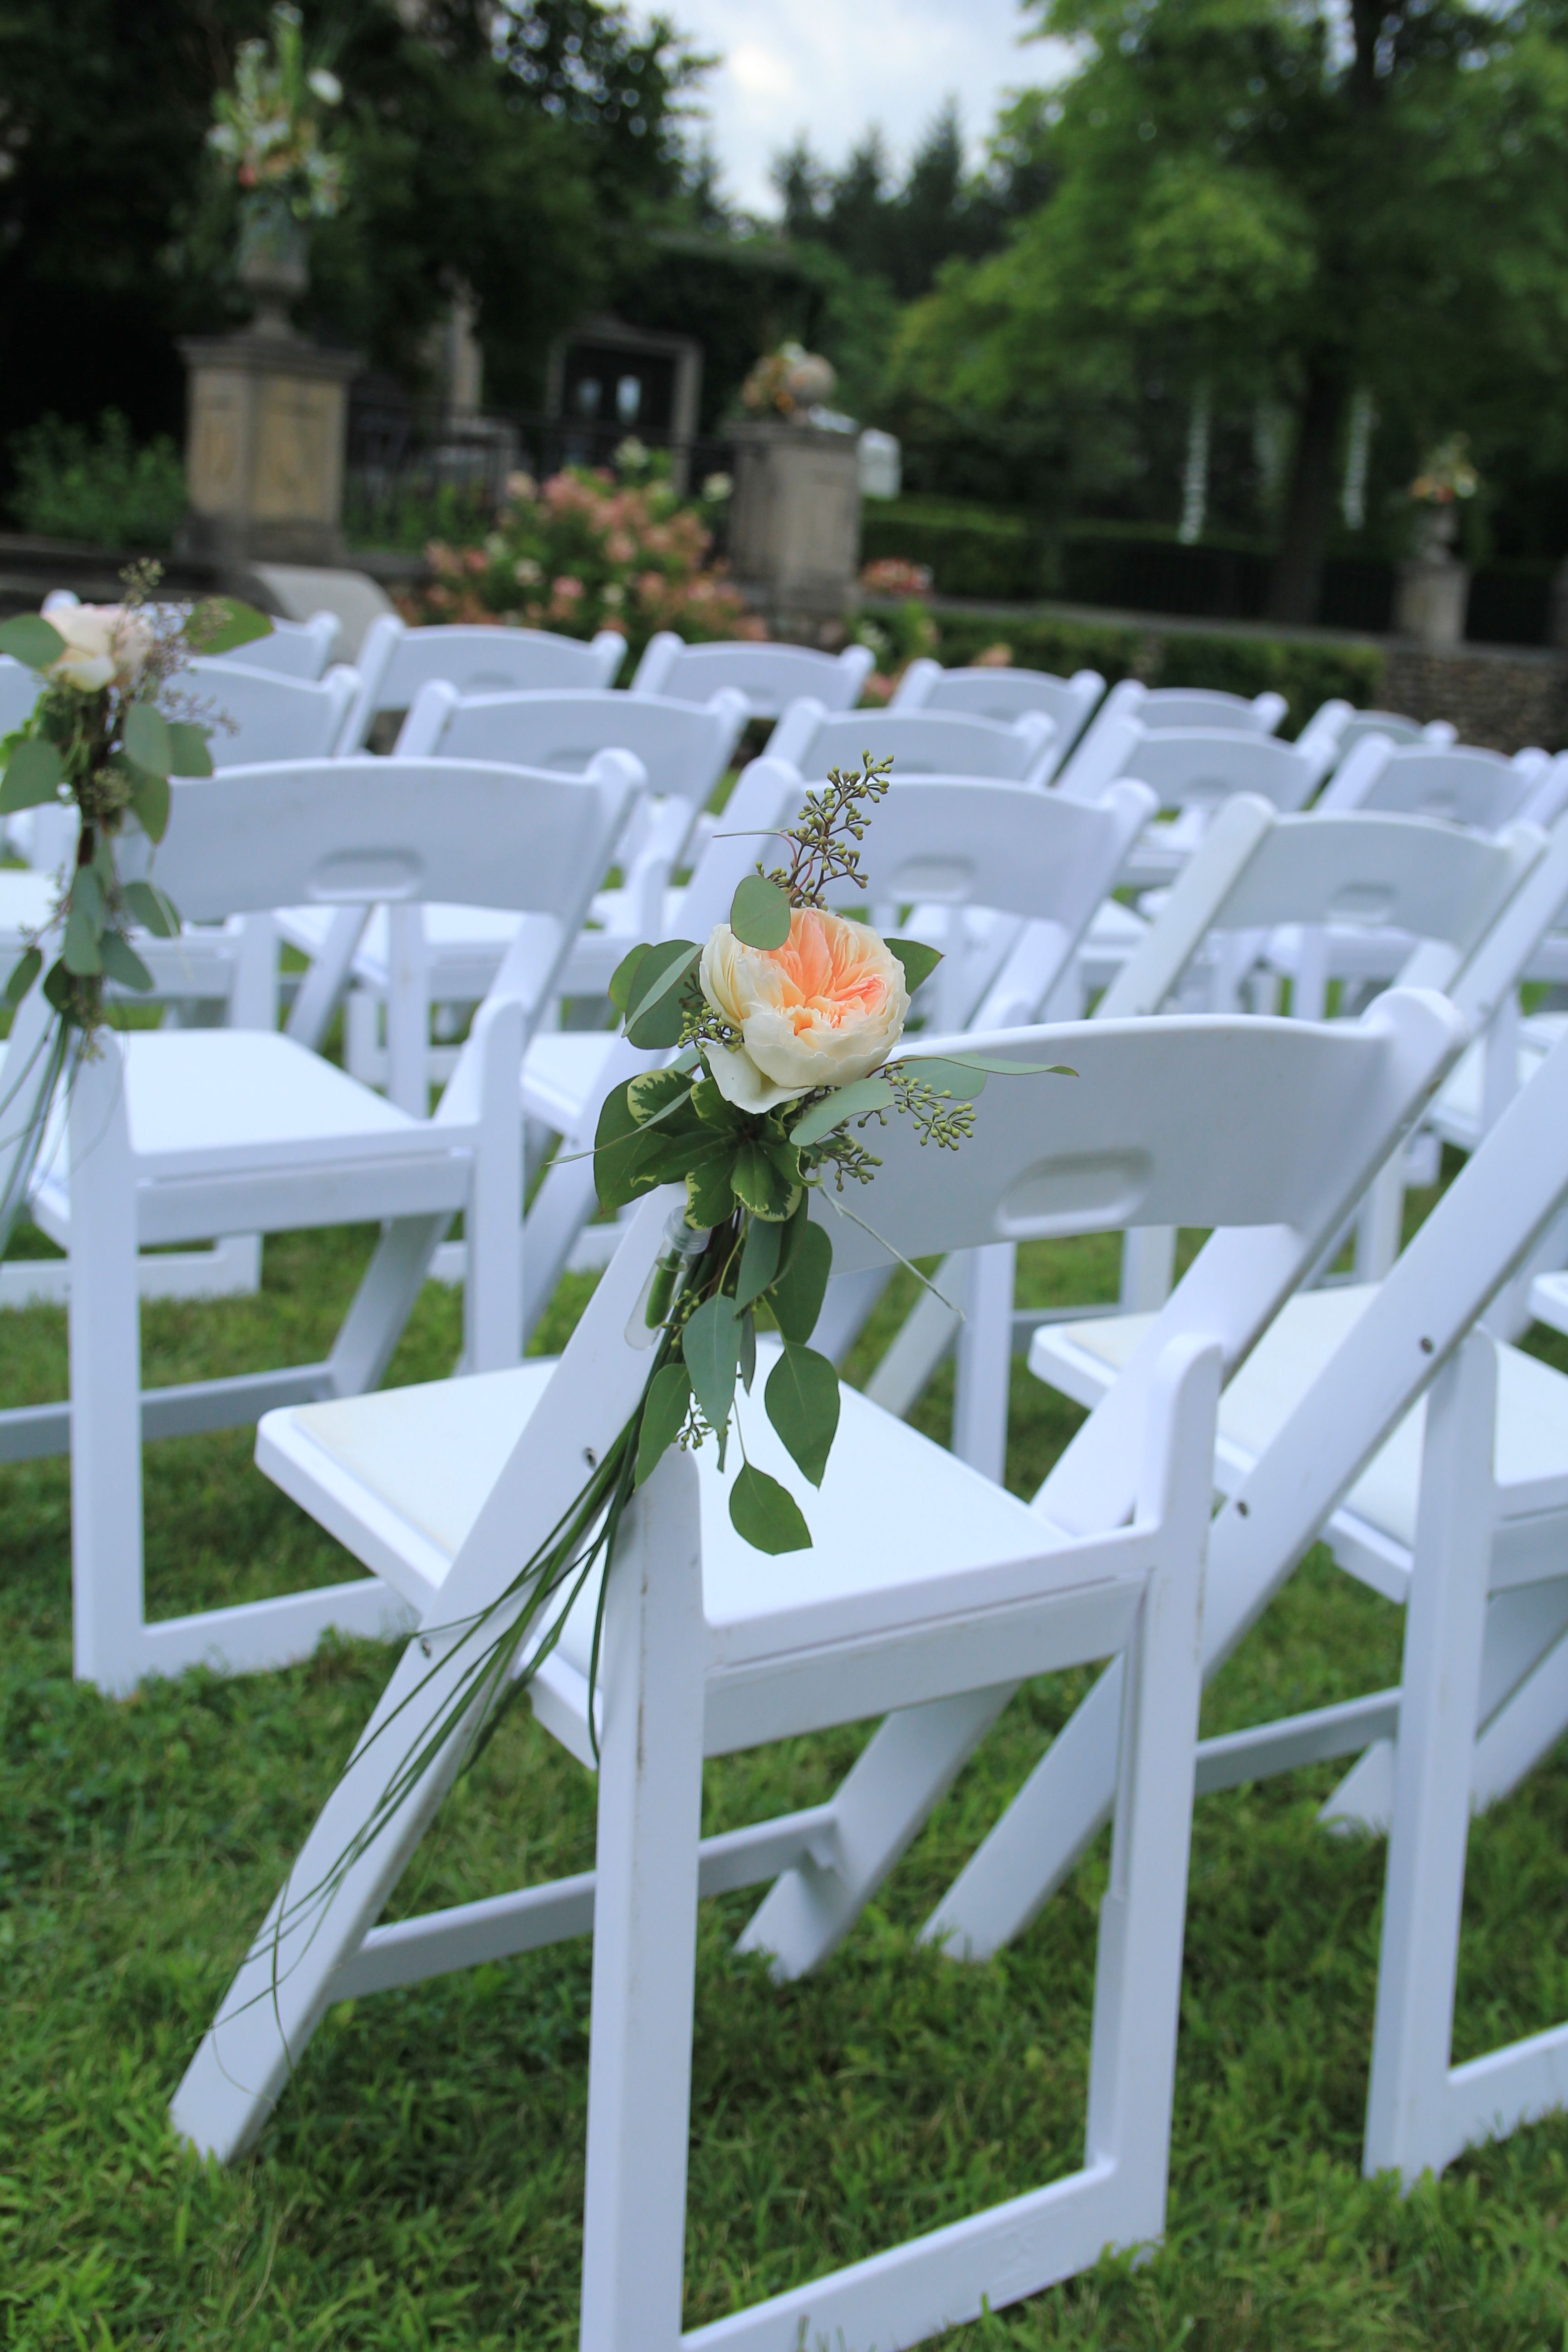 Table And Chair Rentals Inventory The Rental Company Wedding Ceremony Decorations Outdoor Ceremony Decorations Outdoor Wedding Decorations Diy Centerpiece